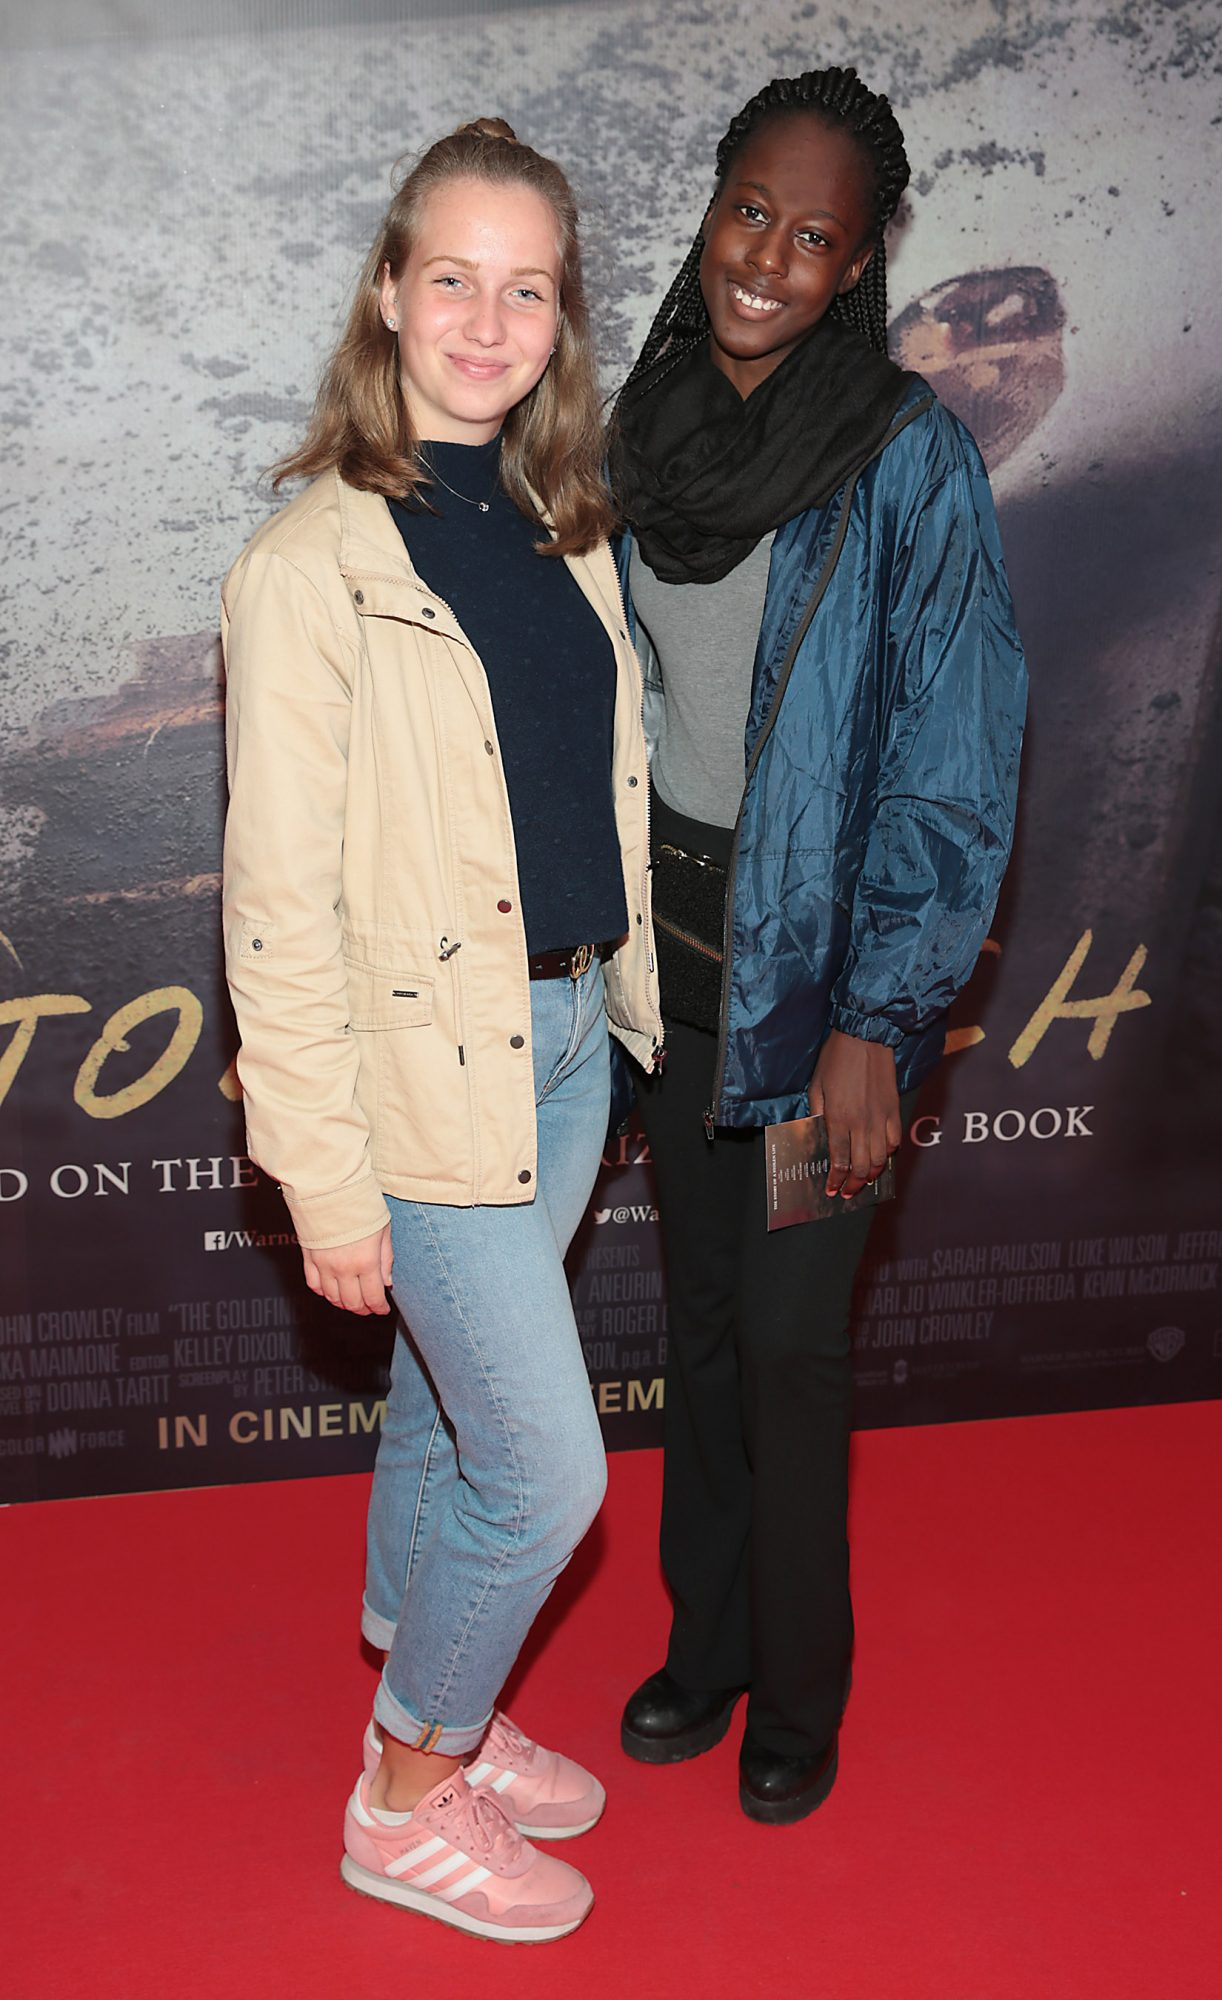 Maria Reter and Habi Ba pictured at the Irish Premiere screening of The Goldfinch at the Lighthouse Cinema, Dublin.  Picture: Brian McEvoy.